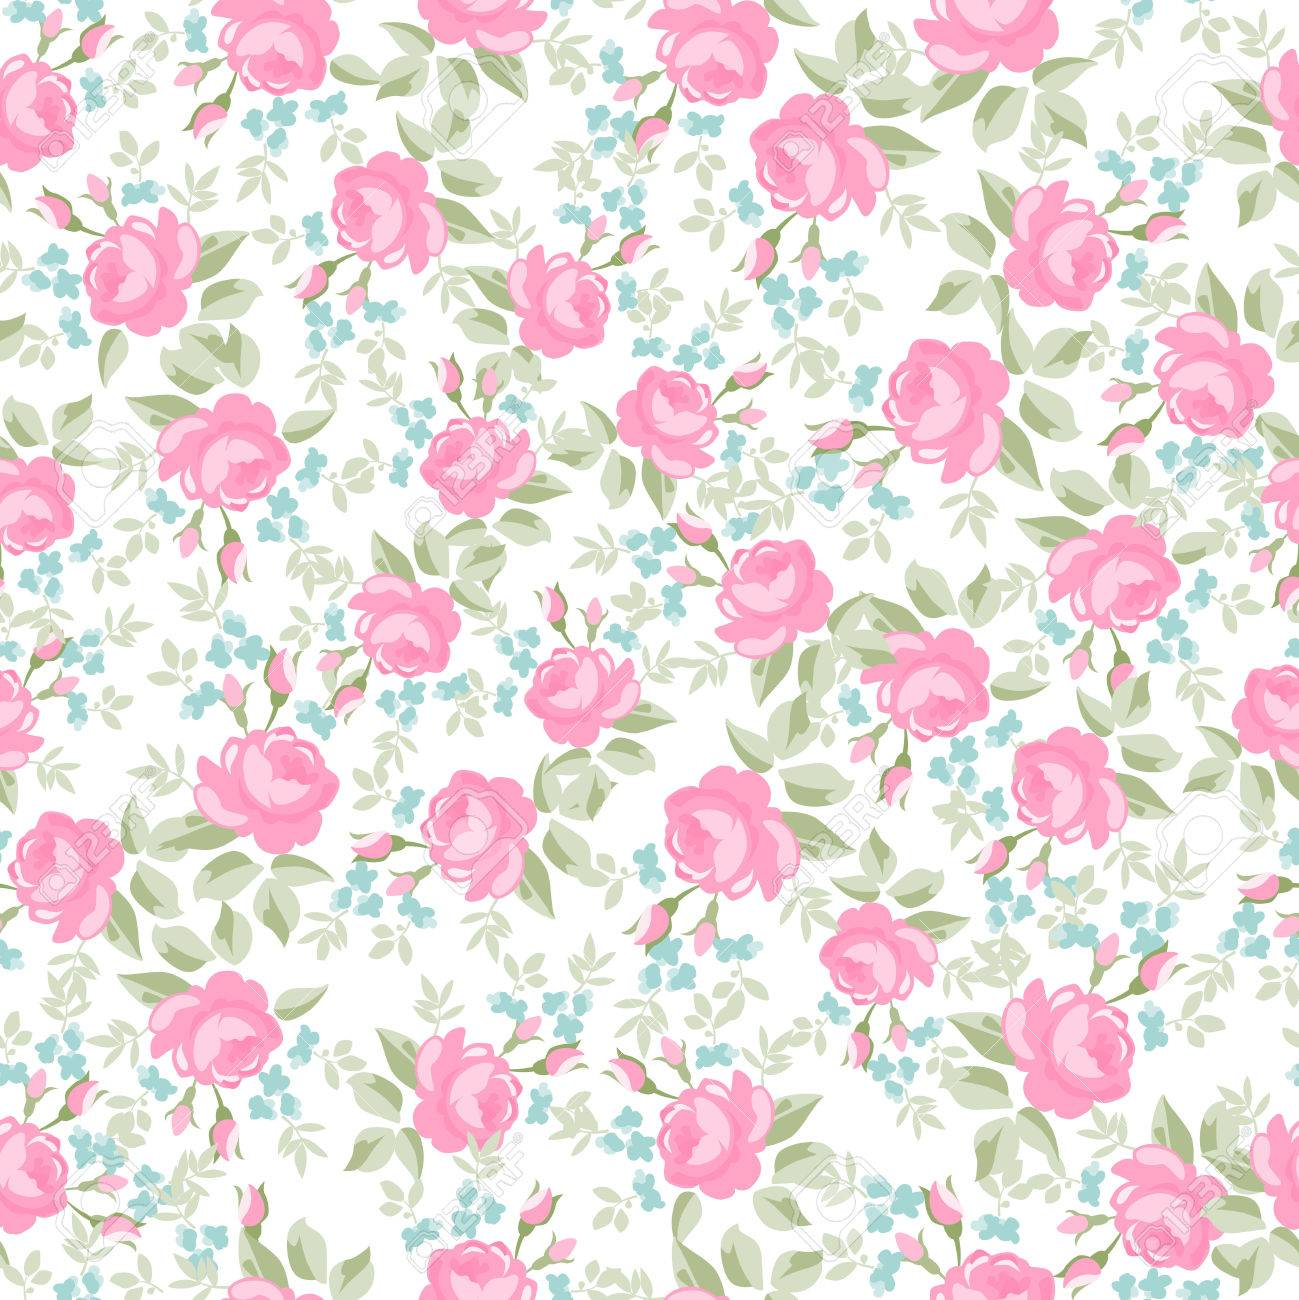 Seamless wallpaper pattern with pastel roses, vector illustration Stock Vector - 50911712